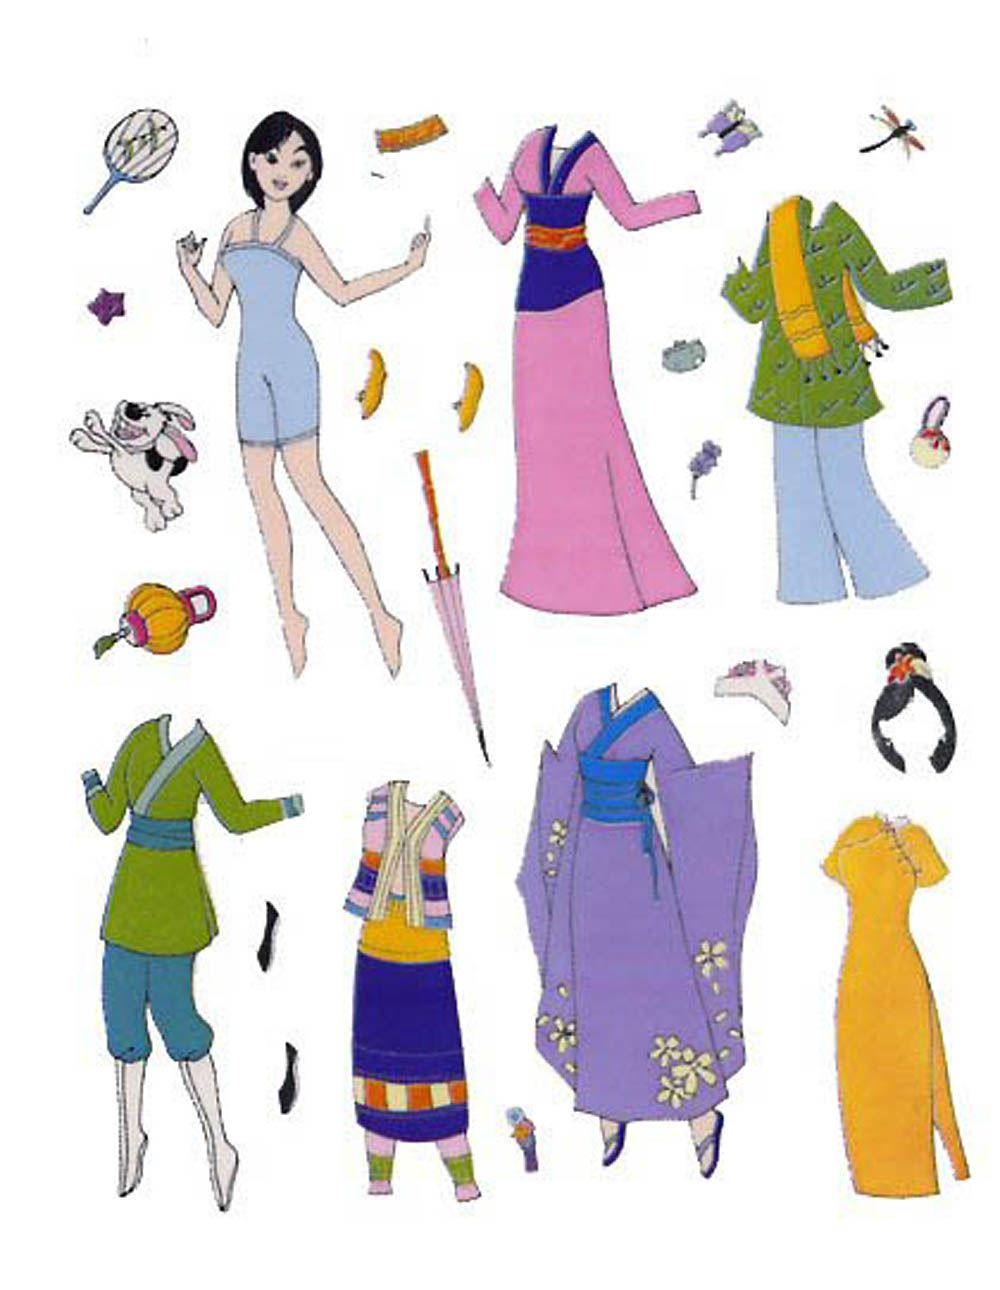 mulan essay pixels images about annahs paper dolls and more